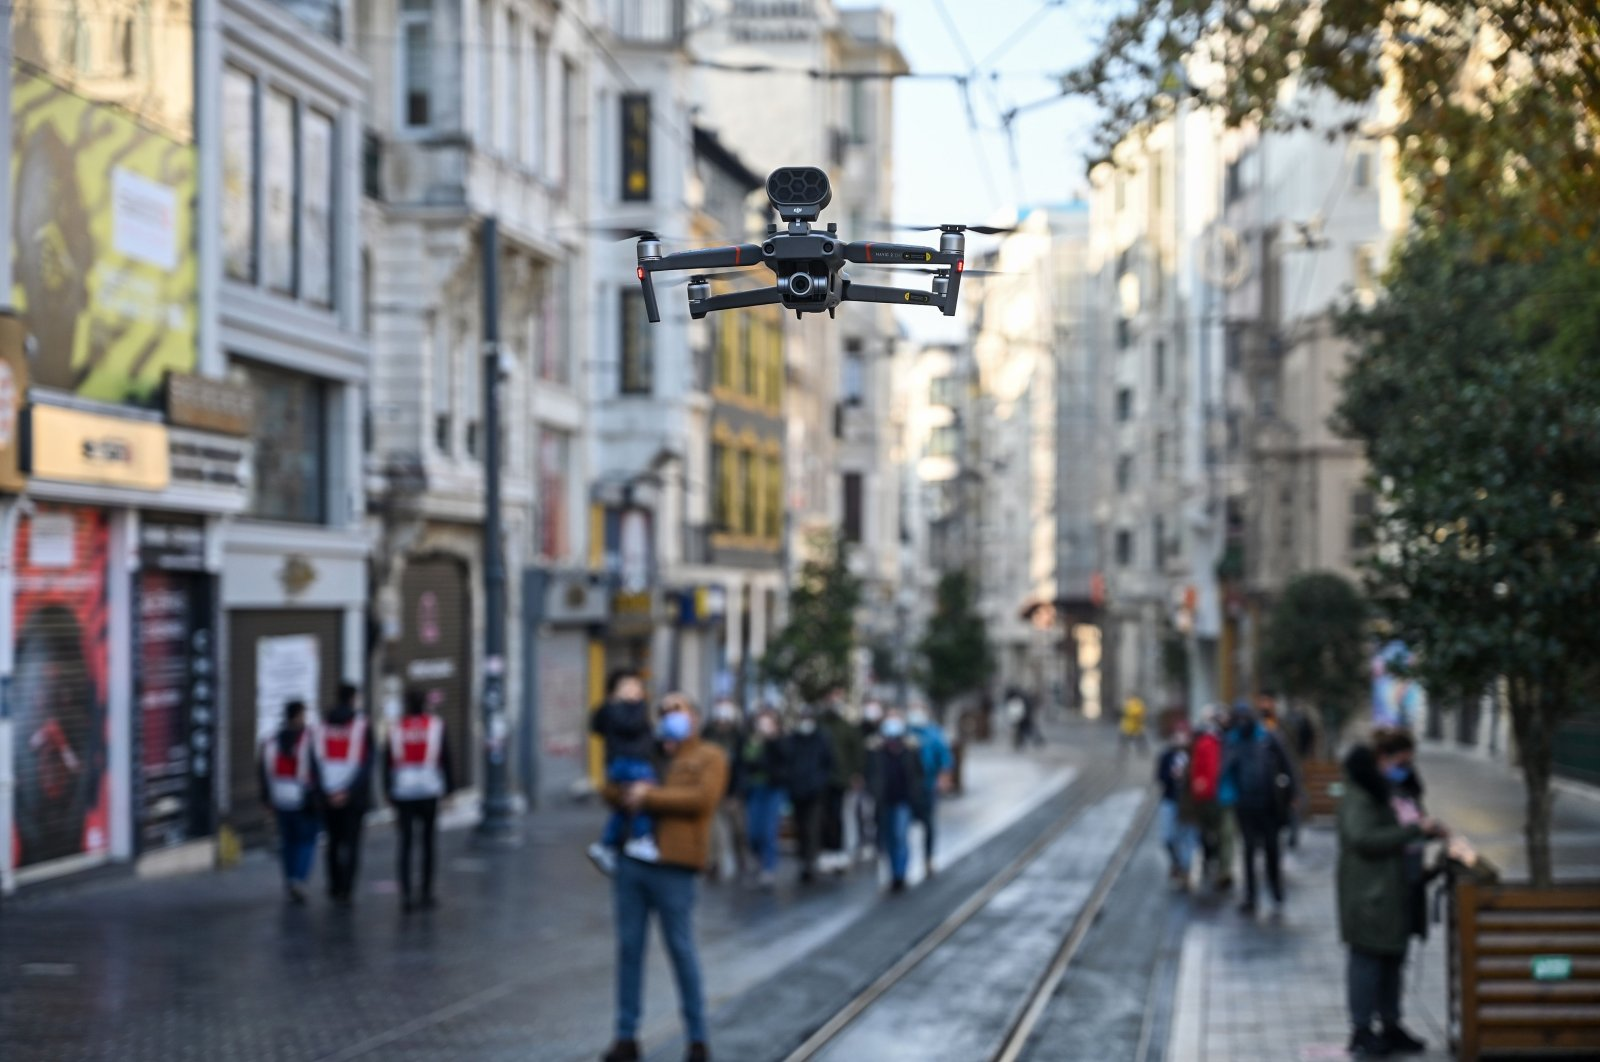 A Turkish police drone announces social distancing rules in English via a speaker as people walk on Istiklal avenue during a weekend curfew aimed at curbing the spread of the COVID-19 pandemic, Istanbul, Dec. 5, 2020. (AFP Photo)